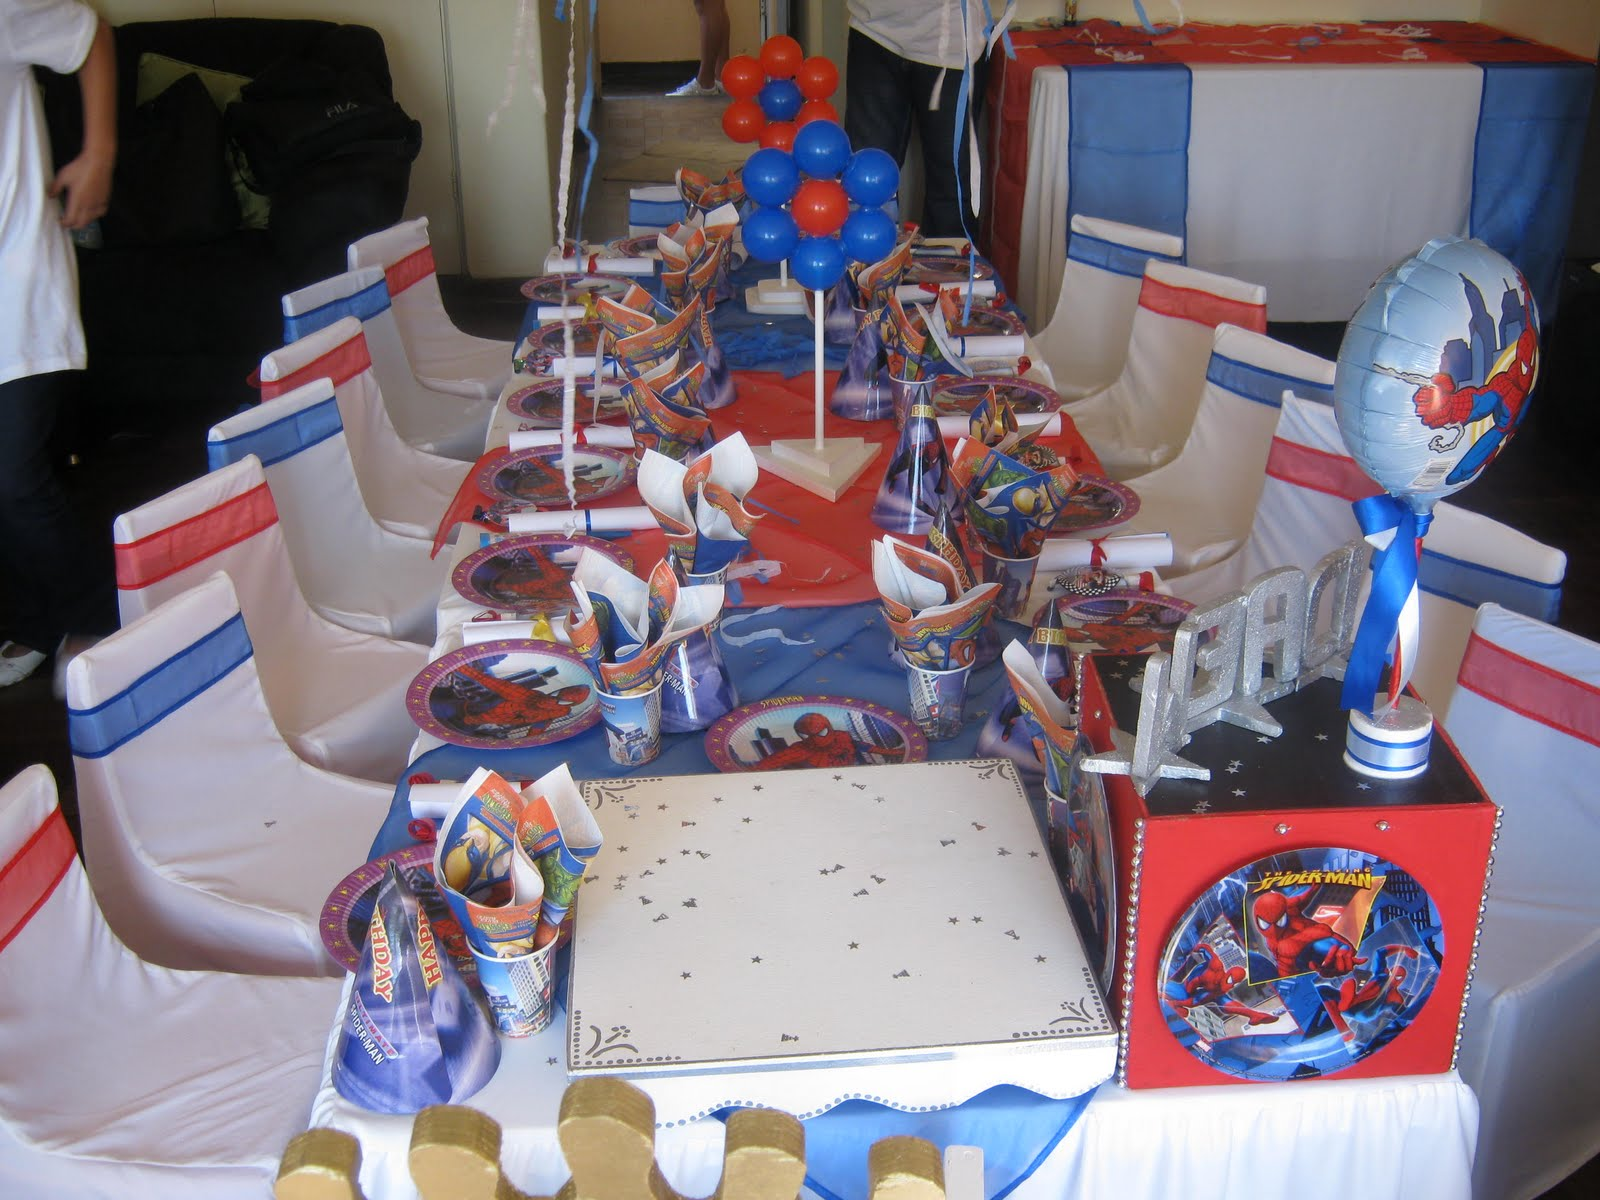 Magnificent Spider-Man Birthday Party Ideas 1600 x 1200 · 255 kB · jpeg